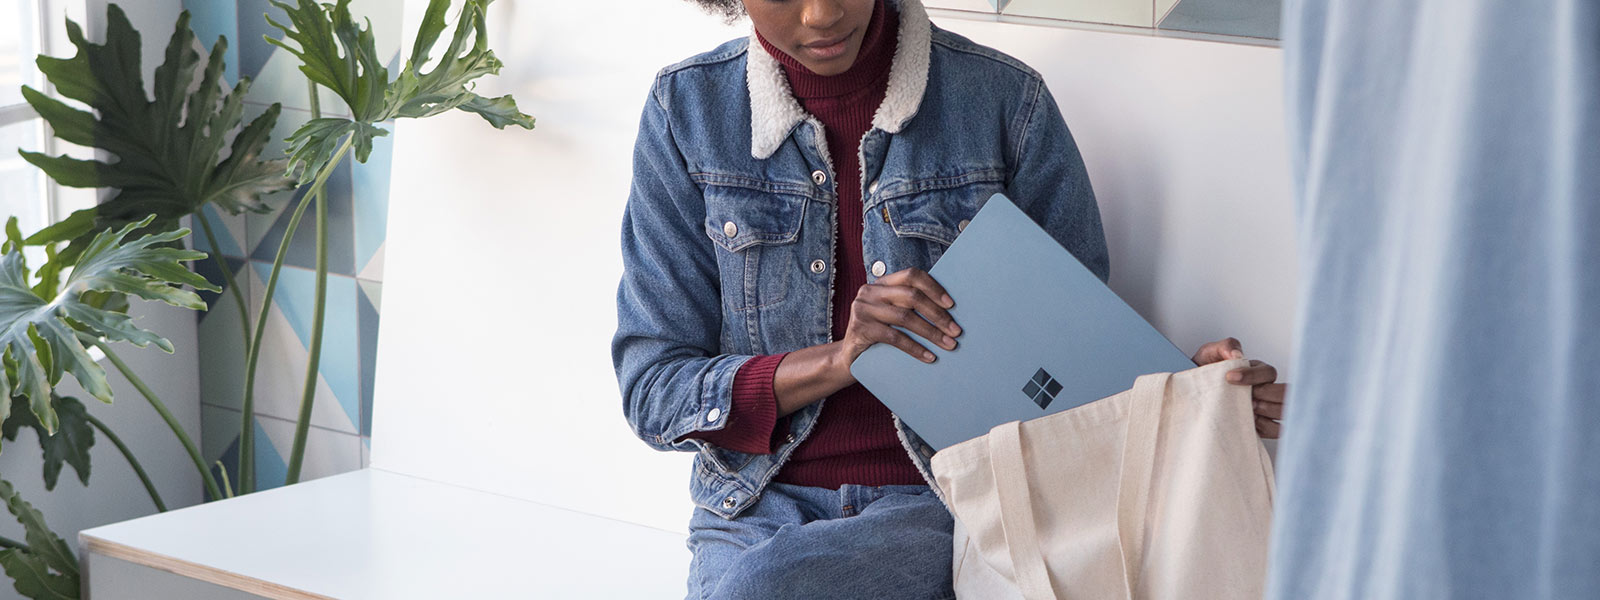 Women placing Surface Laptop in her bag.